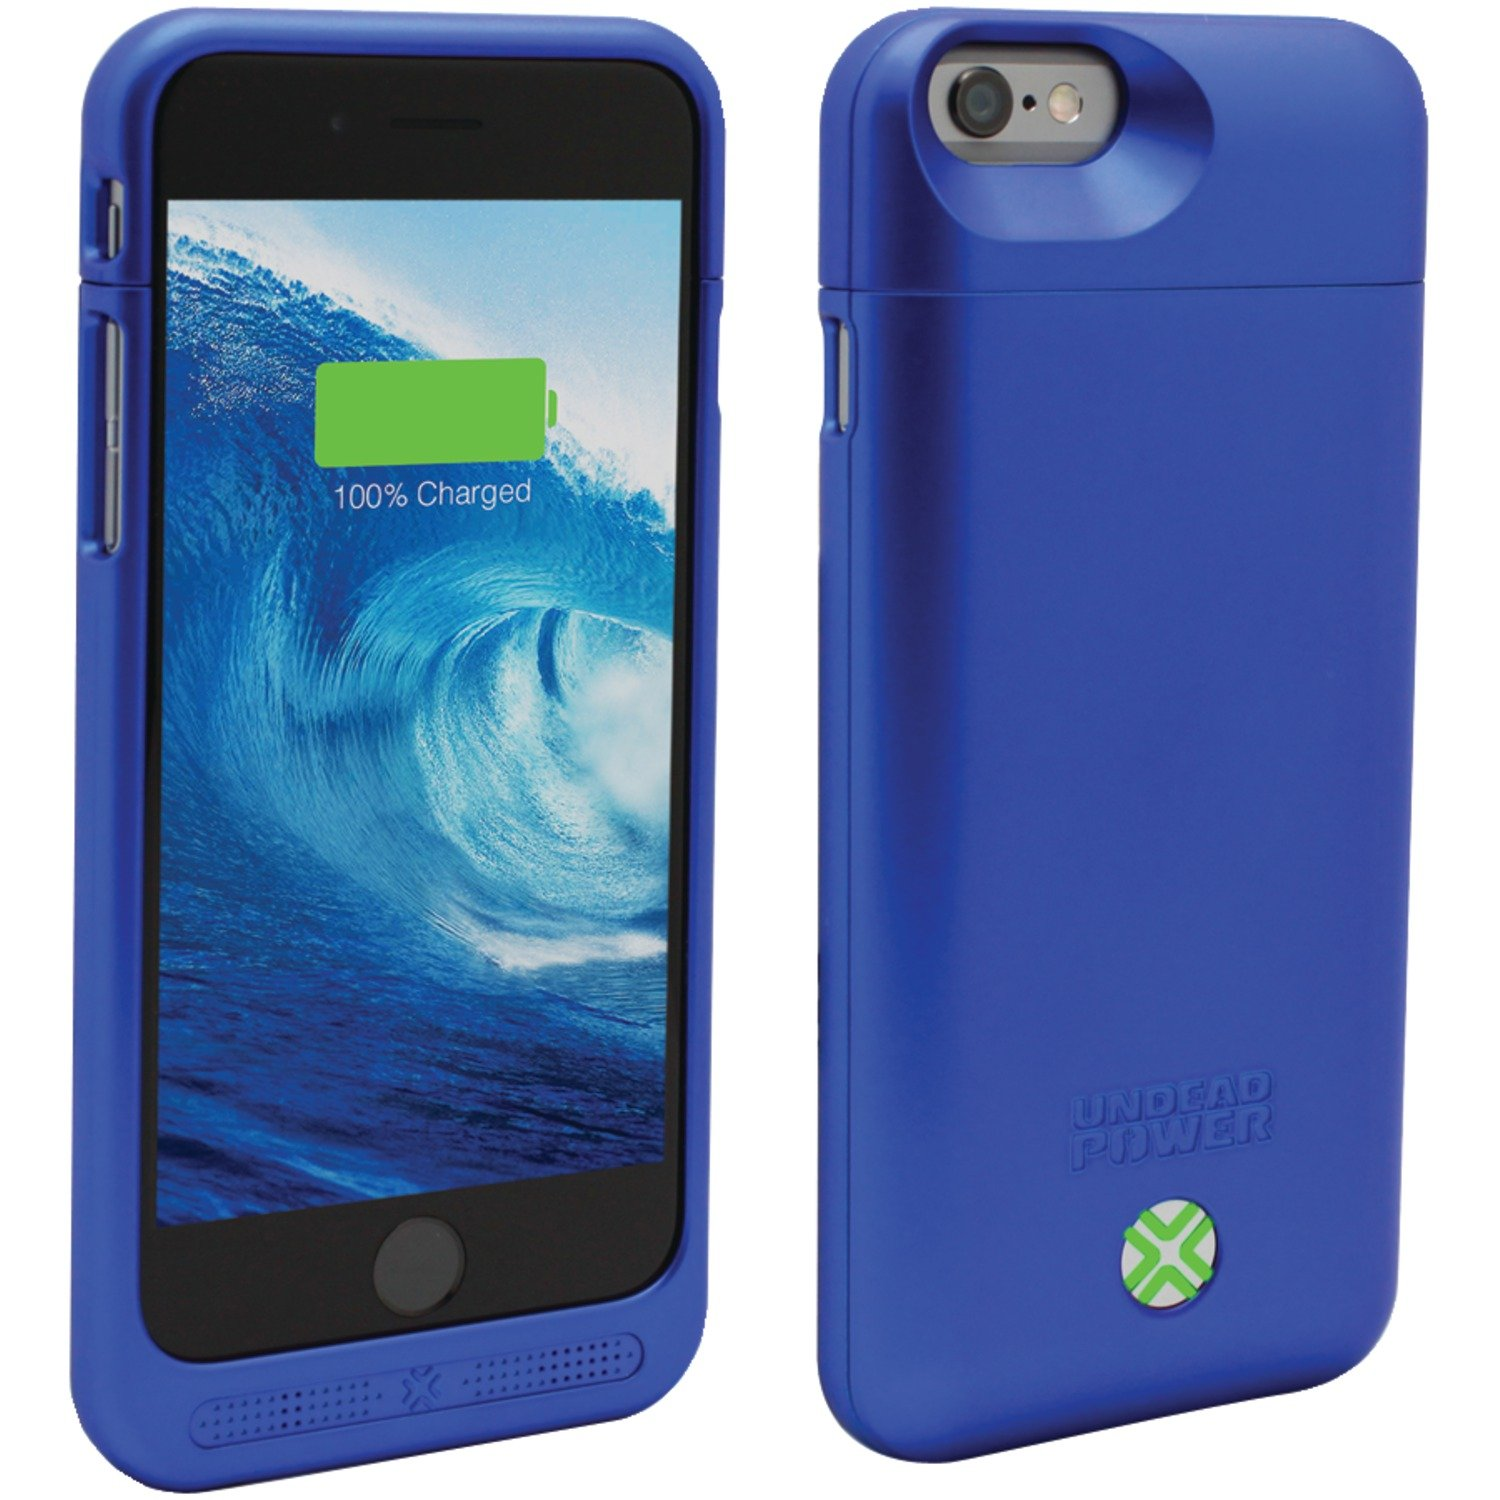 phone charger iphone 6 case